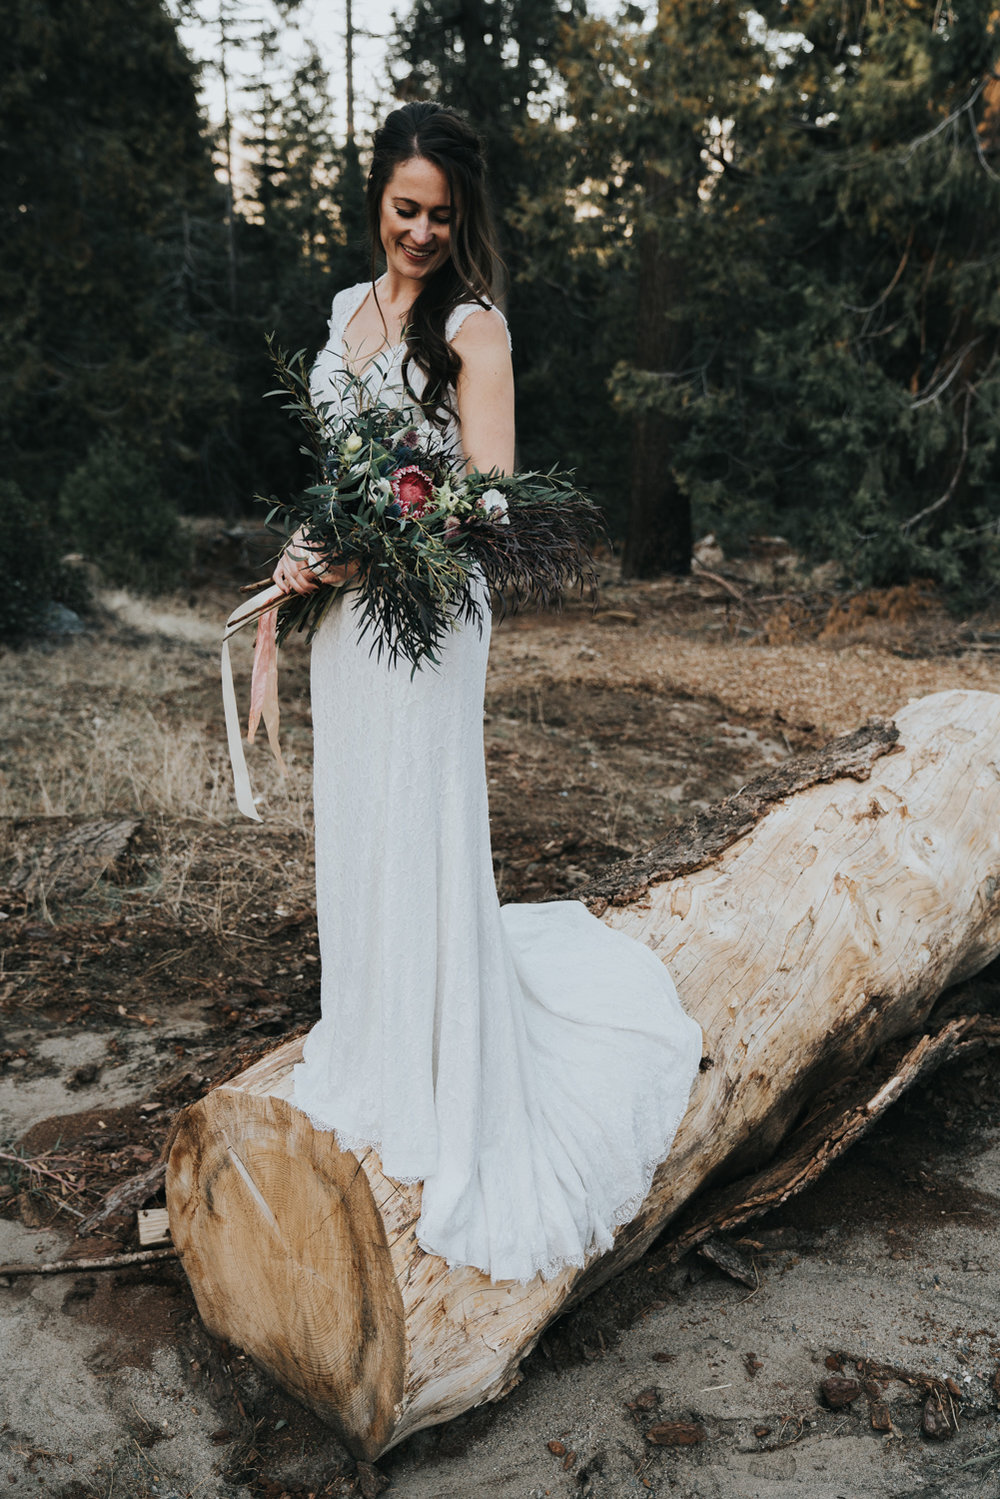 Wild Mountain Elopement by Bessie Young Photography - Adventure Elopement Wild Elopemenet-9.jpg